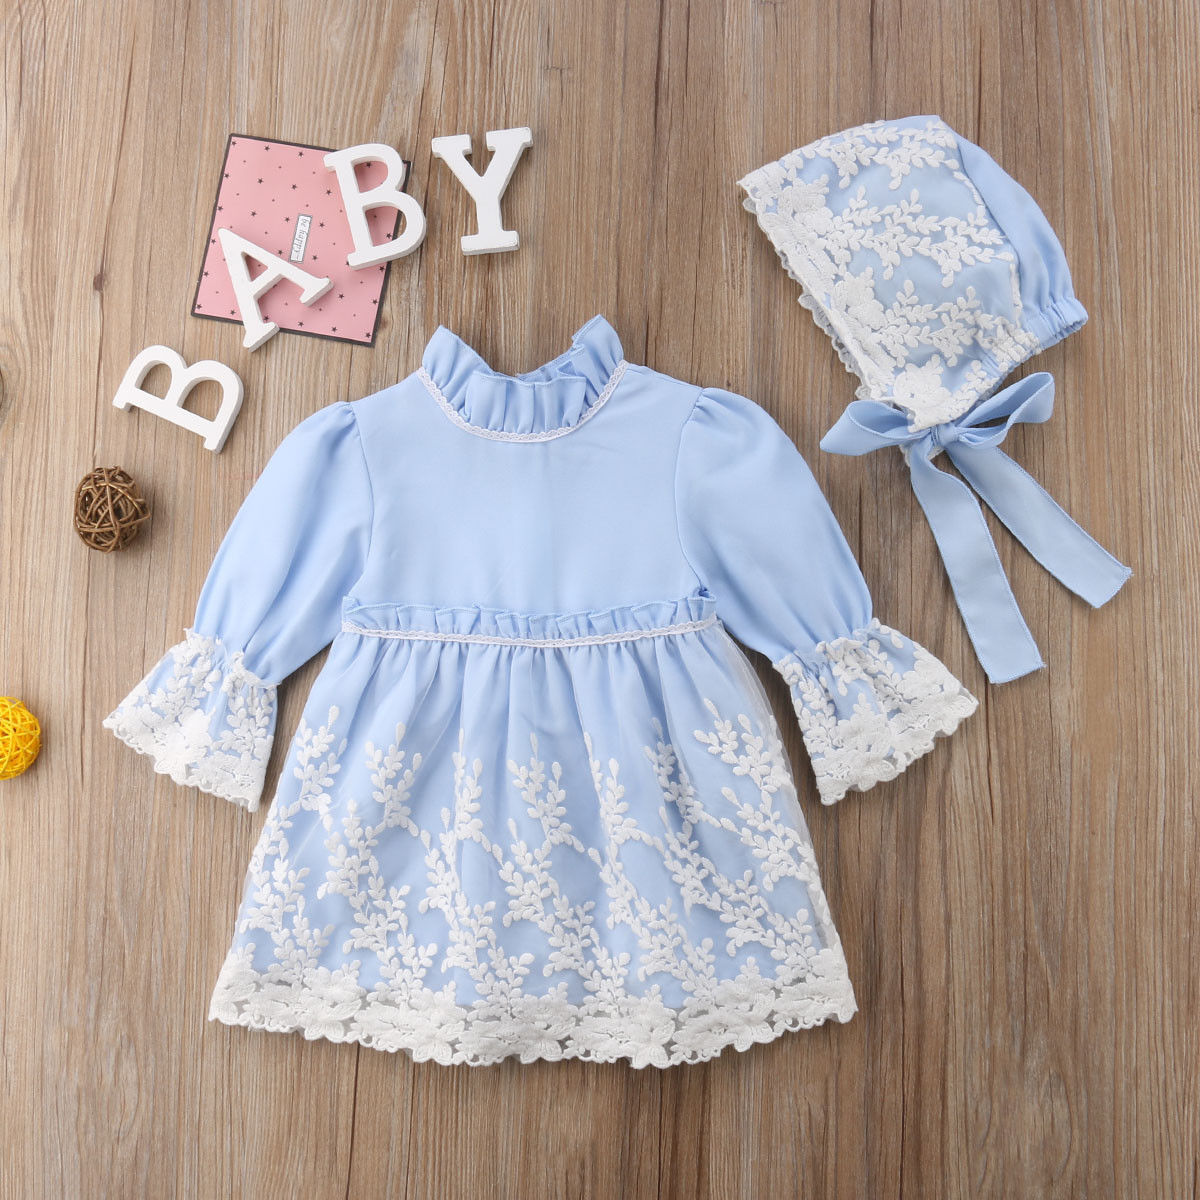 Emmababy Newest Fashion Toddler Baby Girl Clothes Solid Color Lace Flower Dress Princess Party Pageant Dress Hat Outfits Set